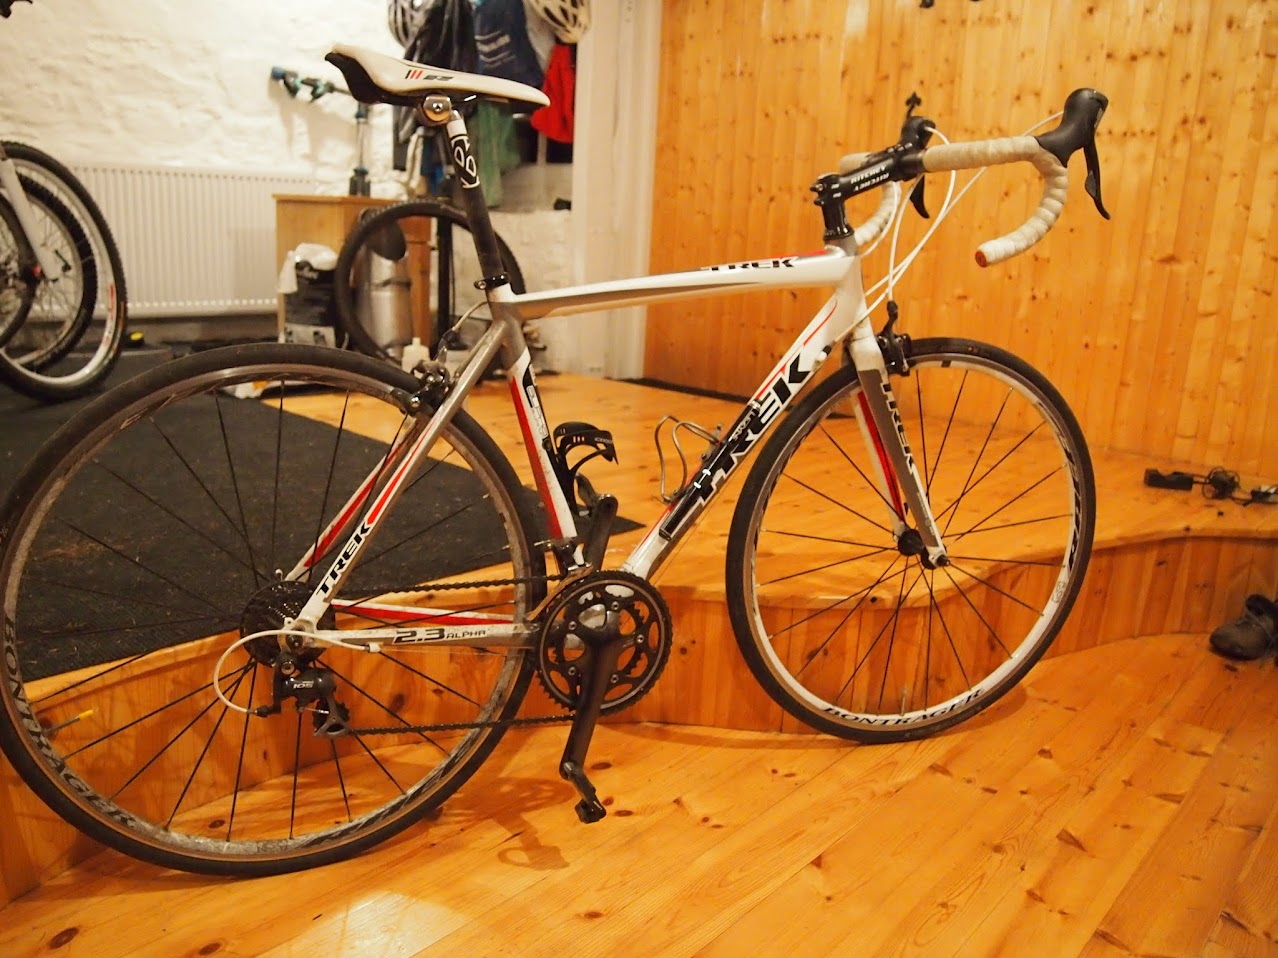 Fs Two Road Bikes Trek 2 3 Shimano 105 And Scott Cr1 Flat Bar